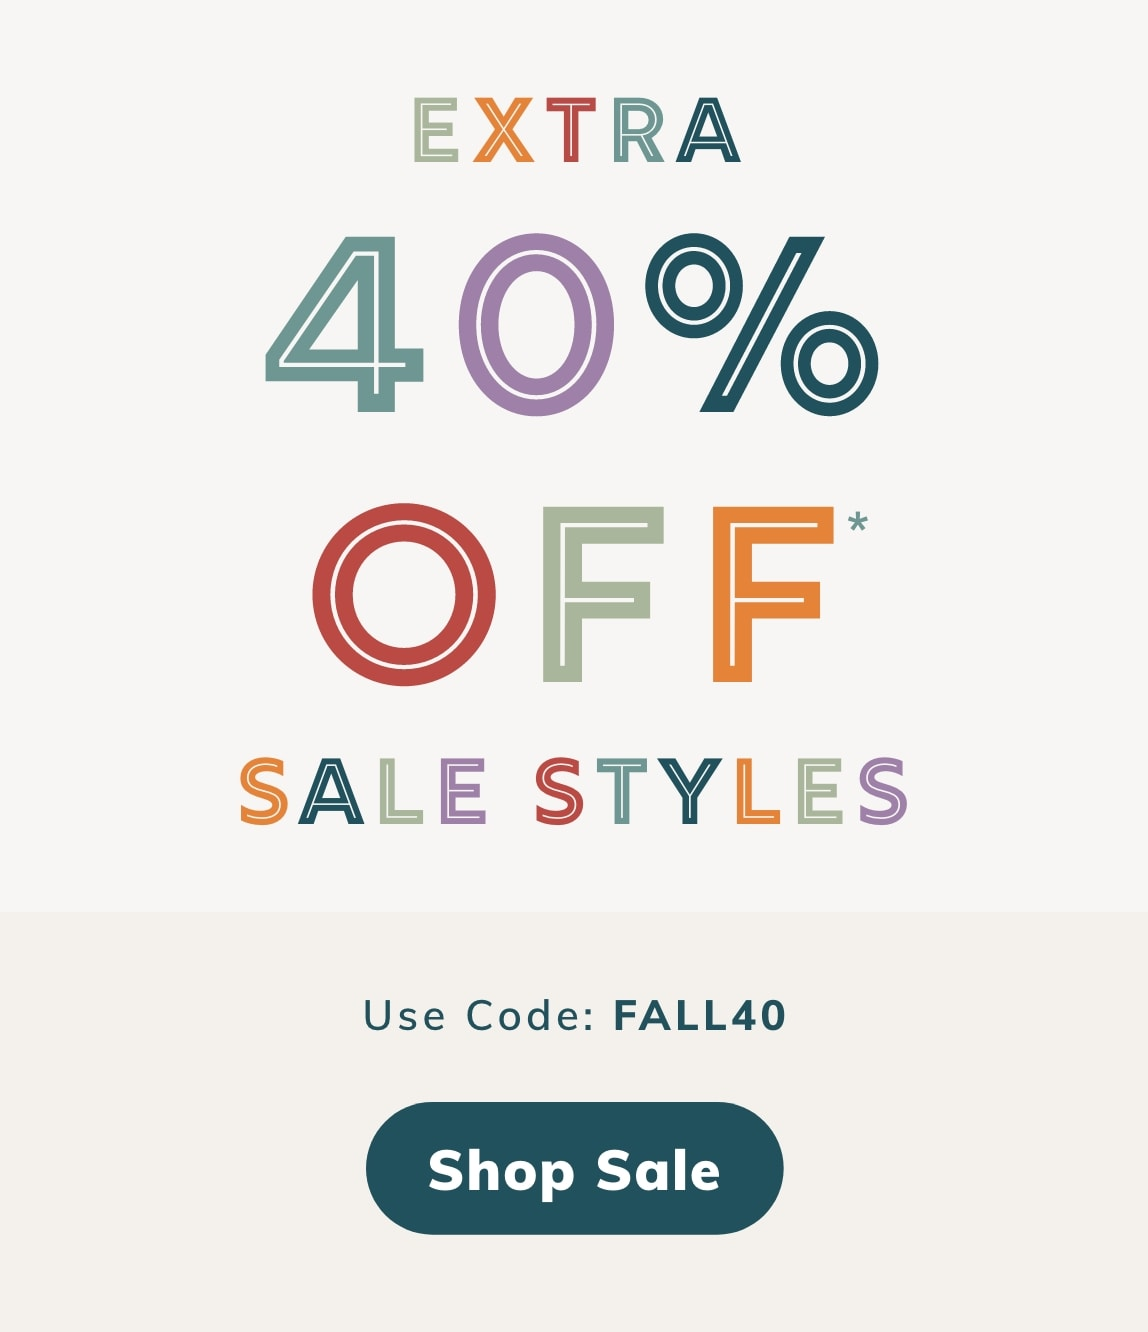 EXTRA 40% OFF* SALE STYLES. Use Code: FALL40. SHOP SALE